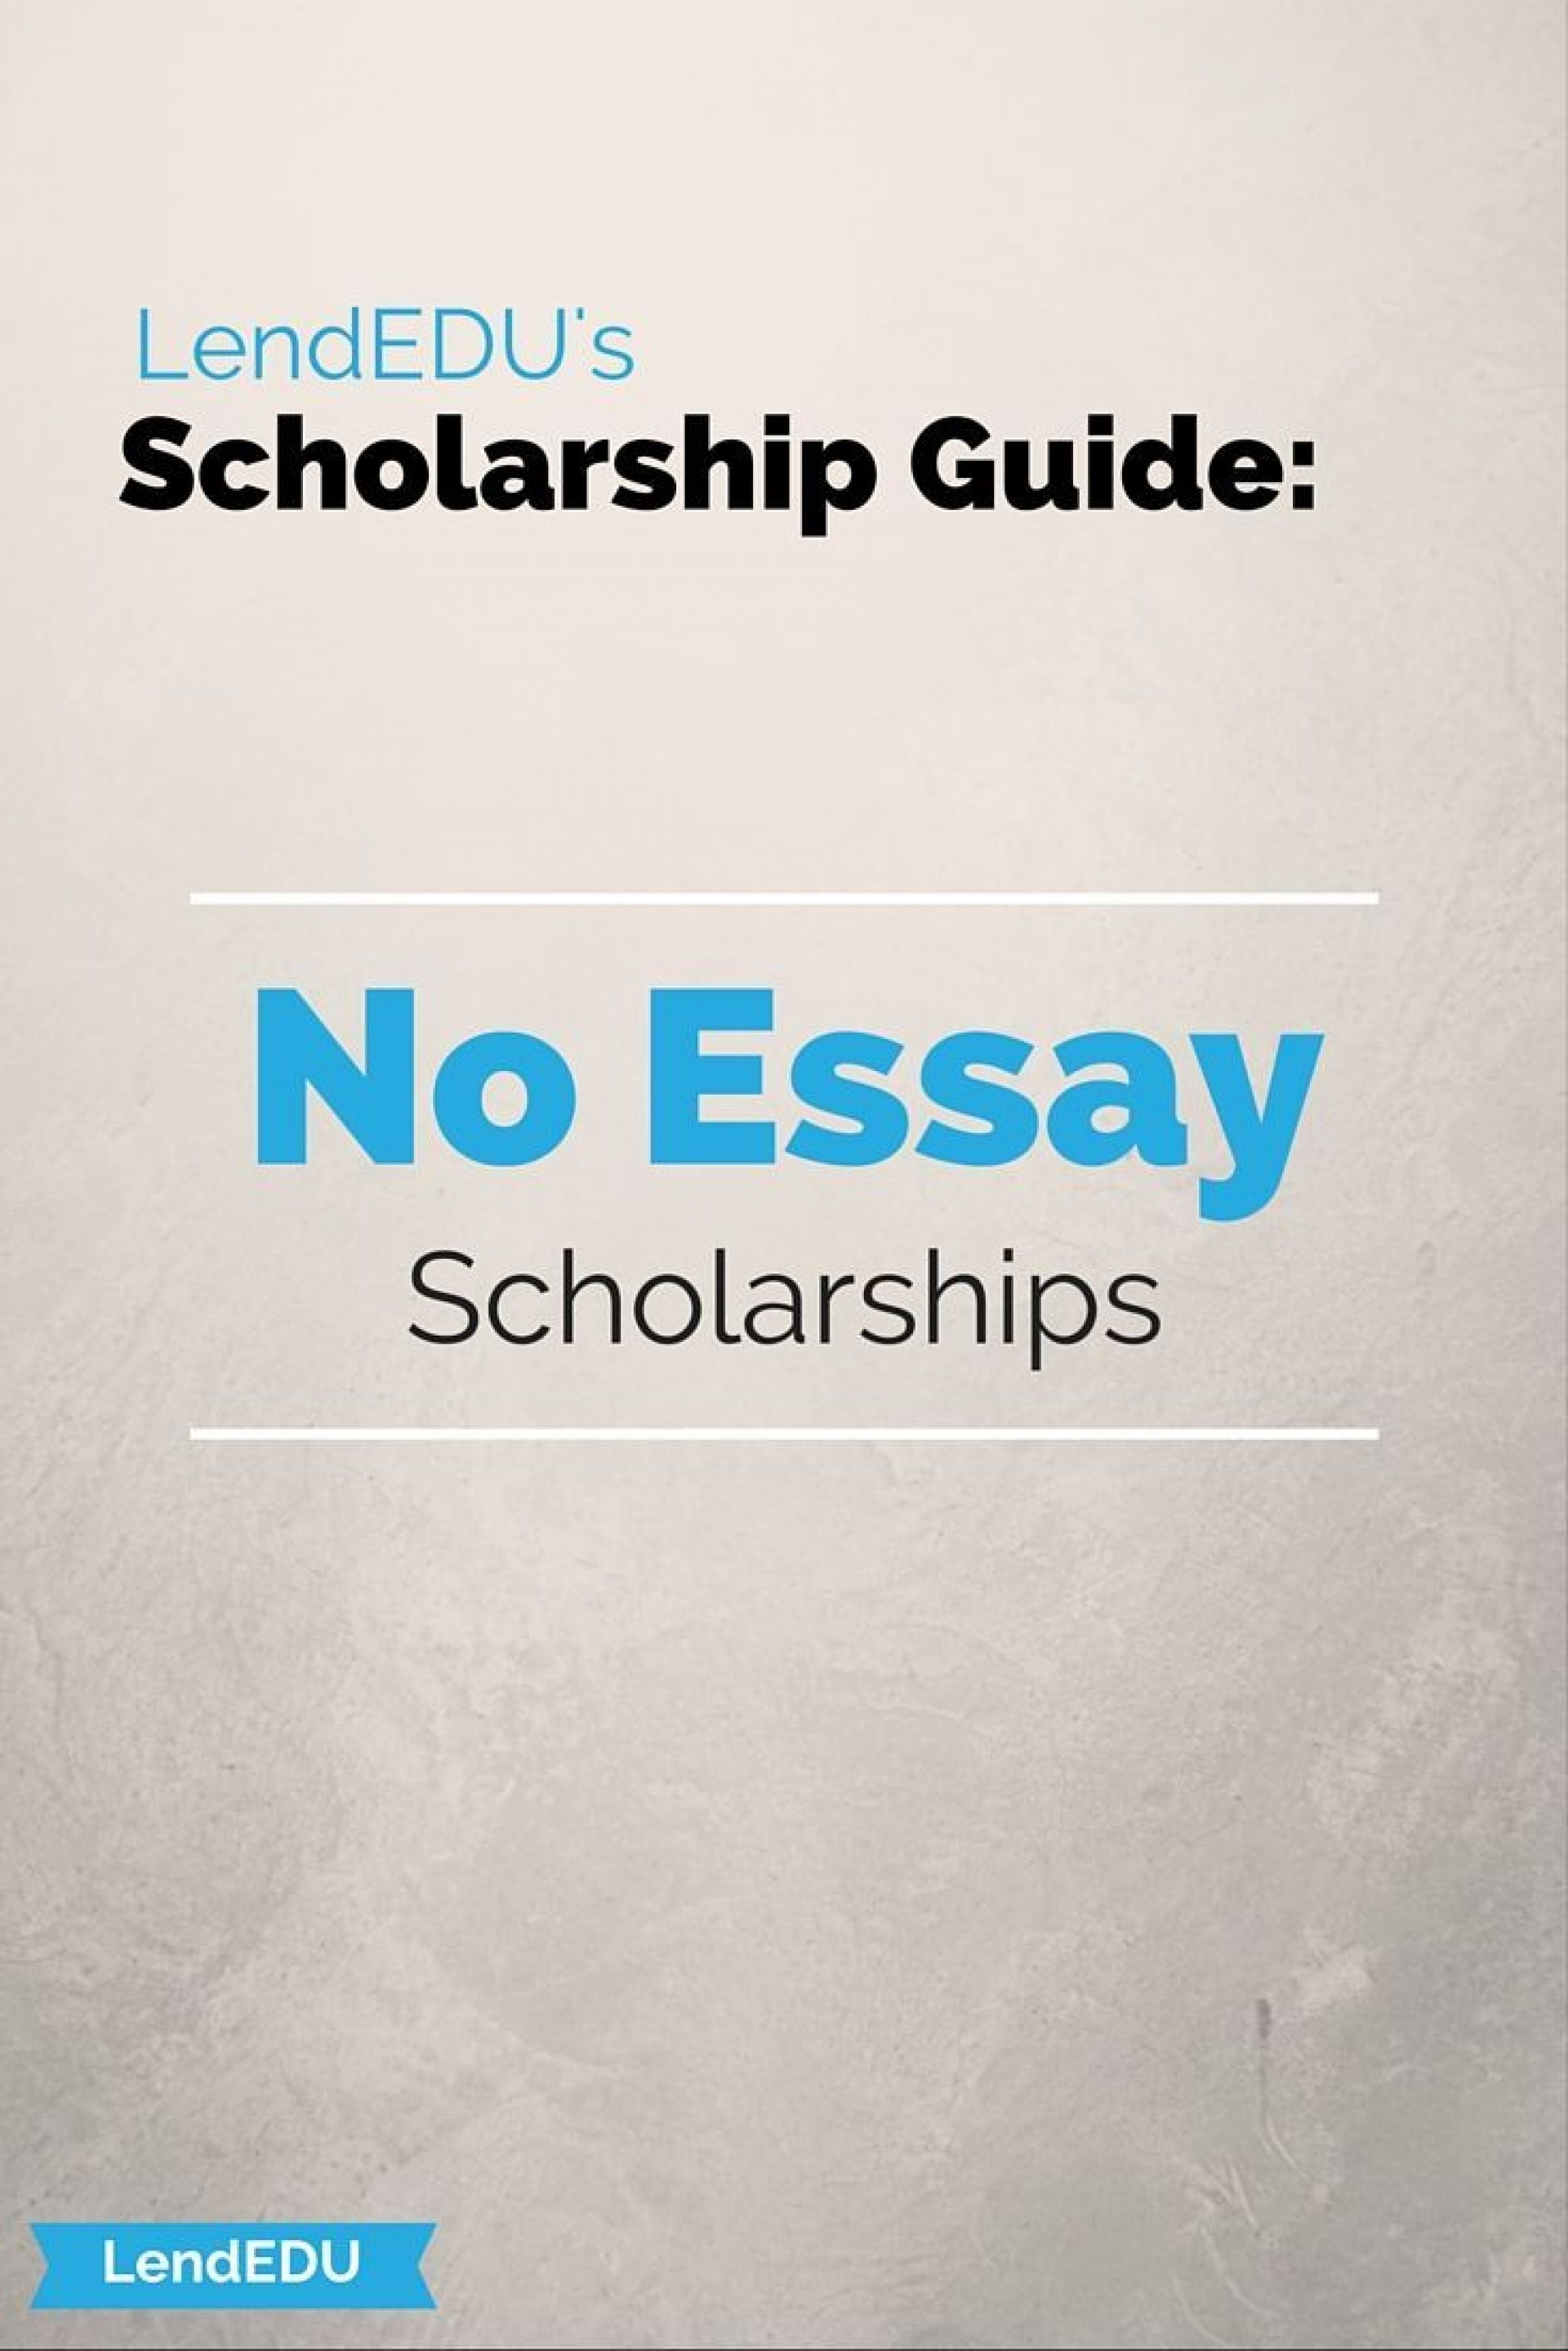 016 Essay Example No Scholarship Wondrous Scholarships For High School Freshman Seniors 2019 1920